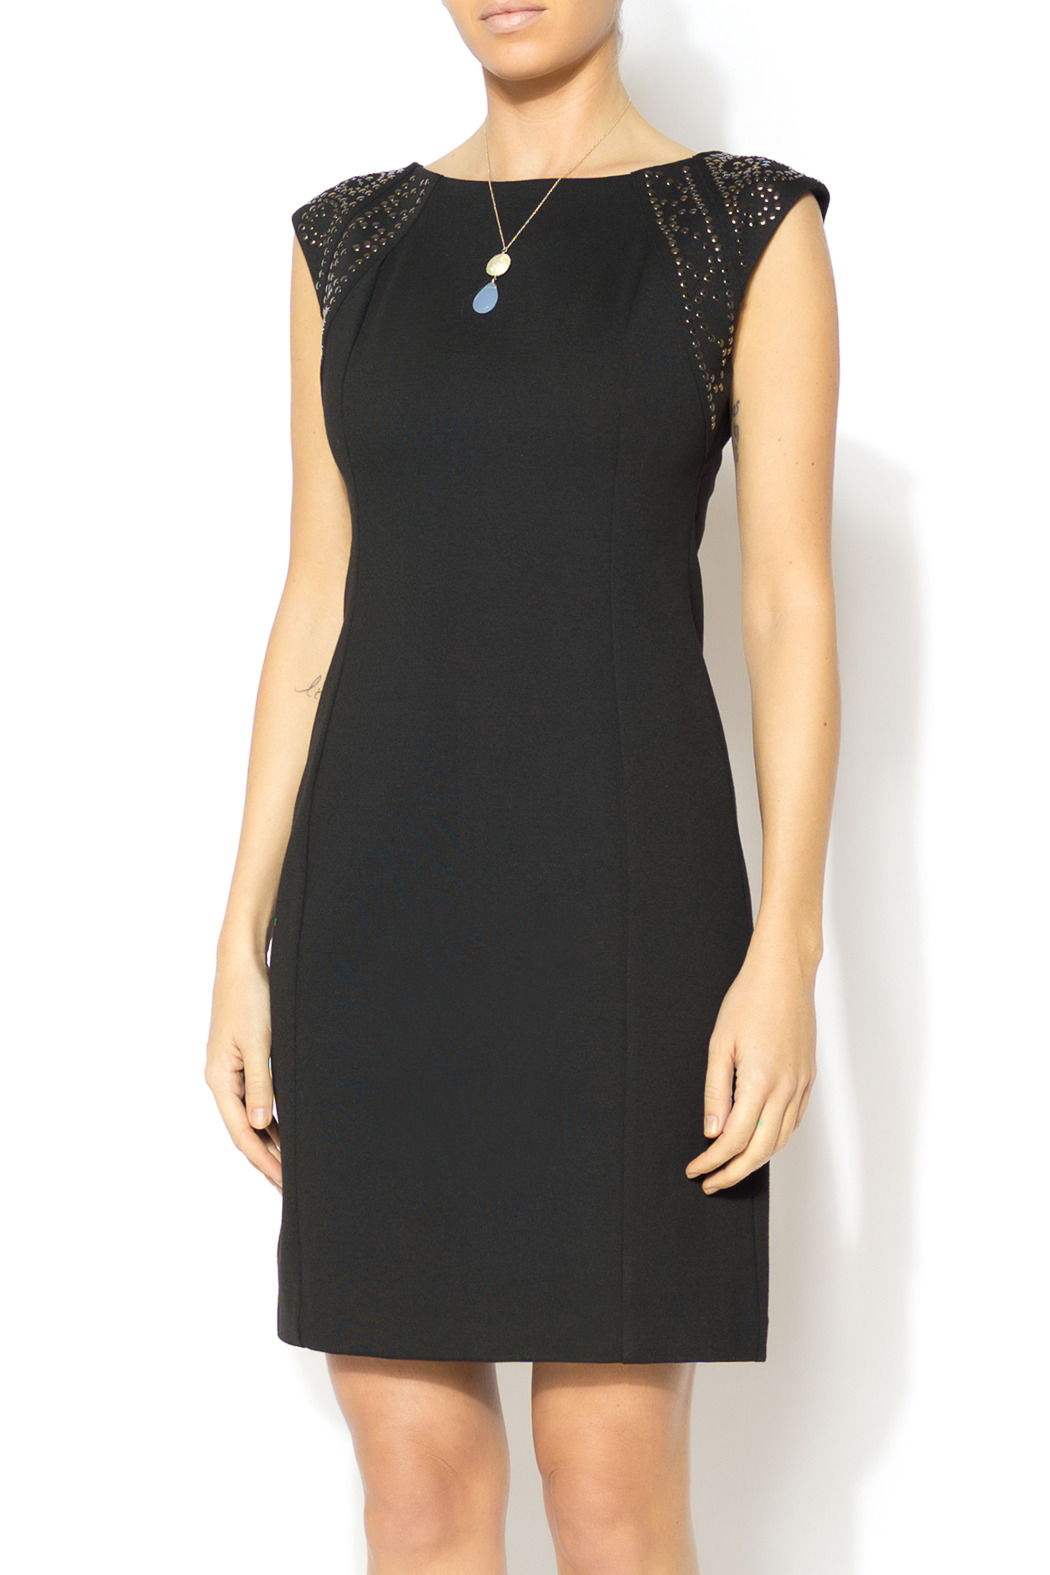 Max and Cleo Studded Dress from North Carolina by Peachy Keen ...